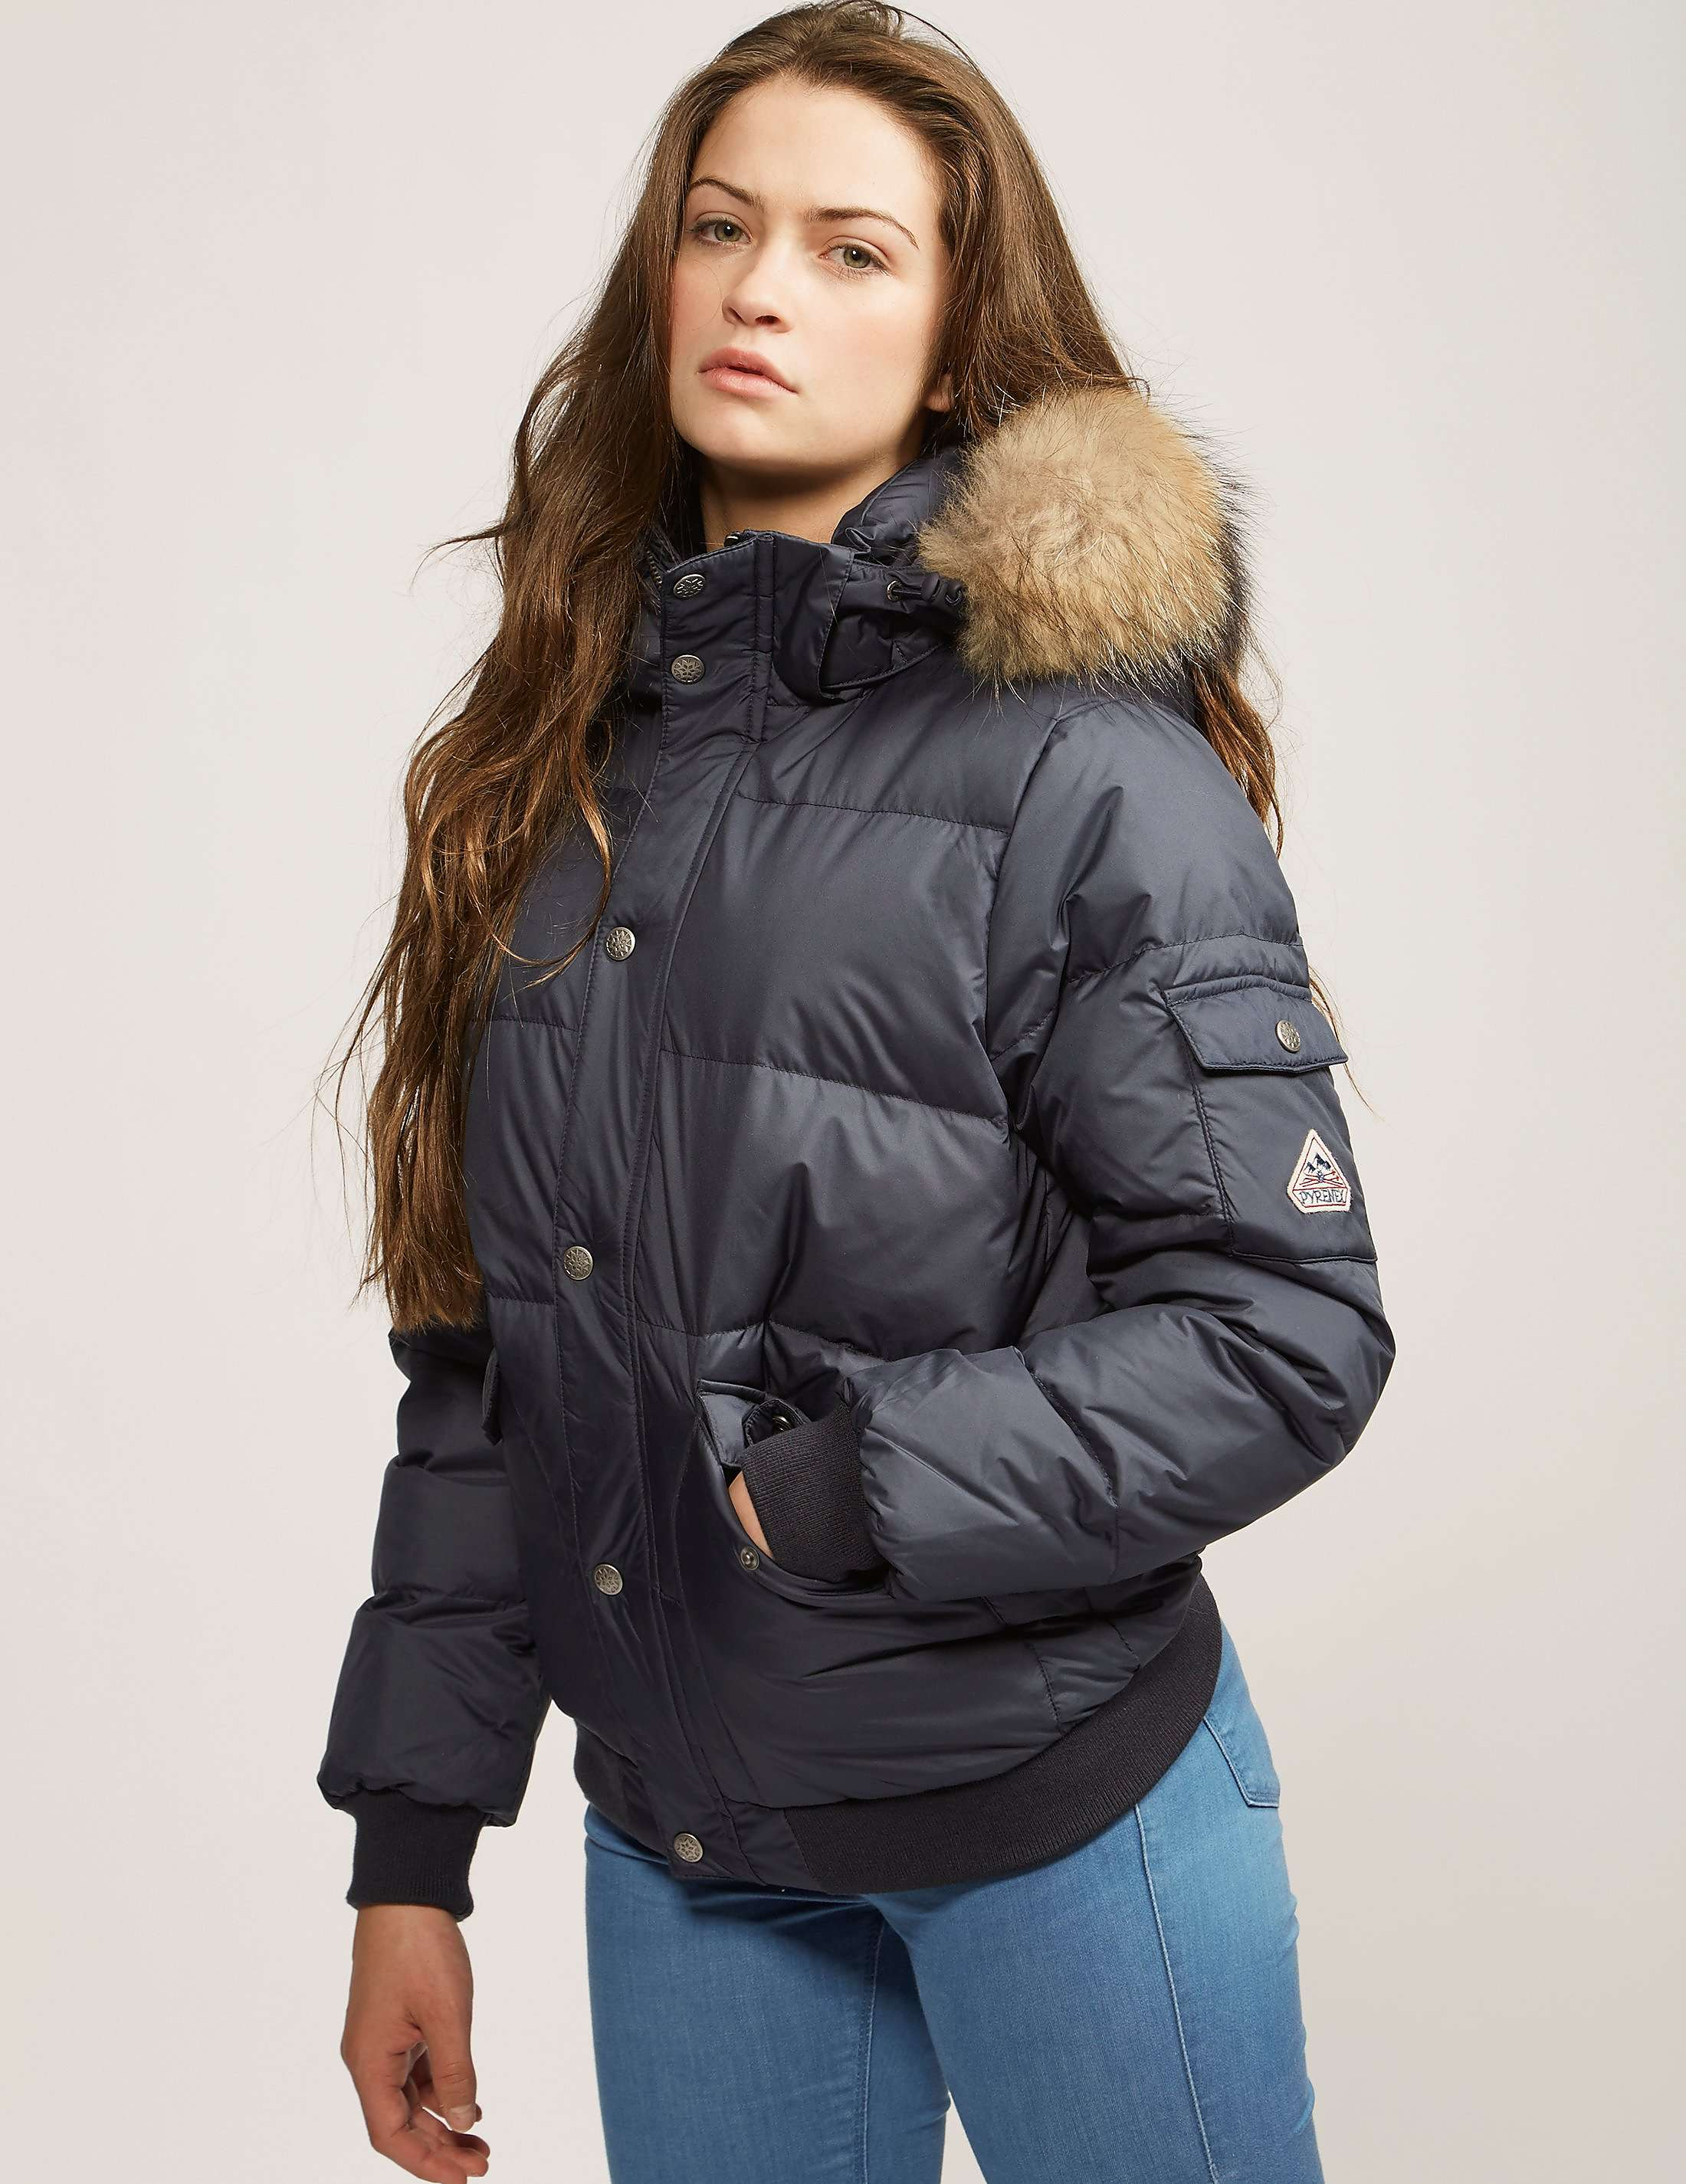 Girls Coats and Jackets  Macys